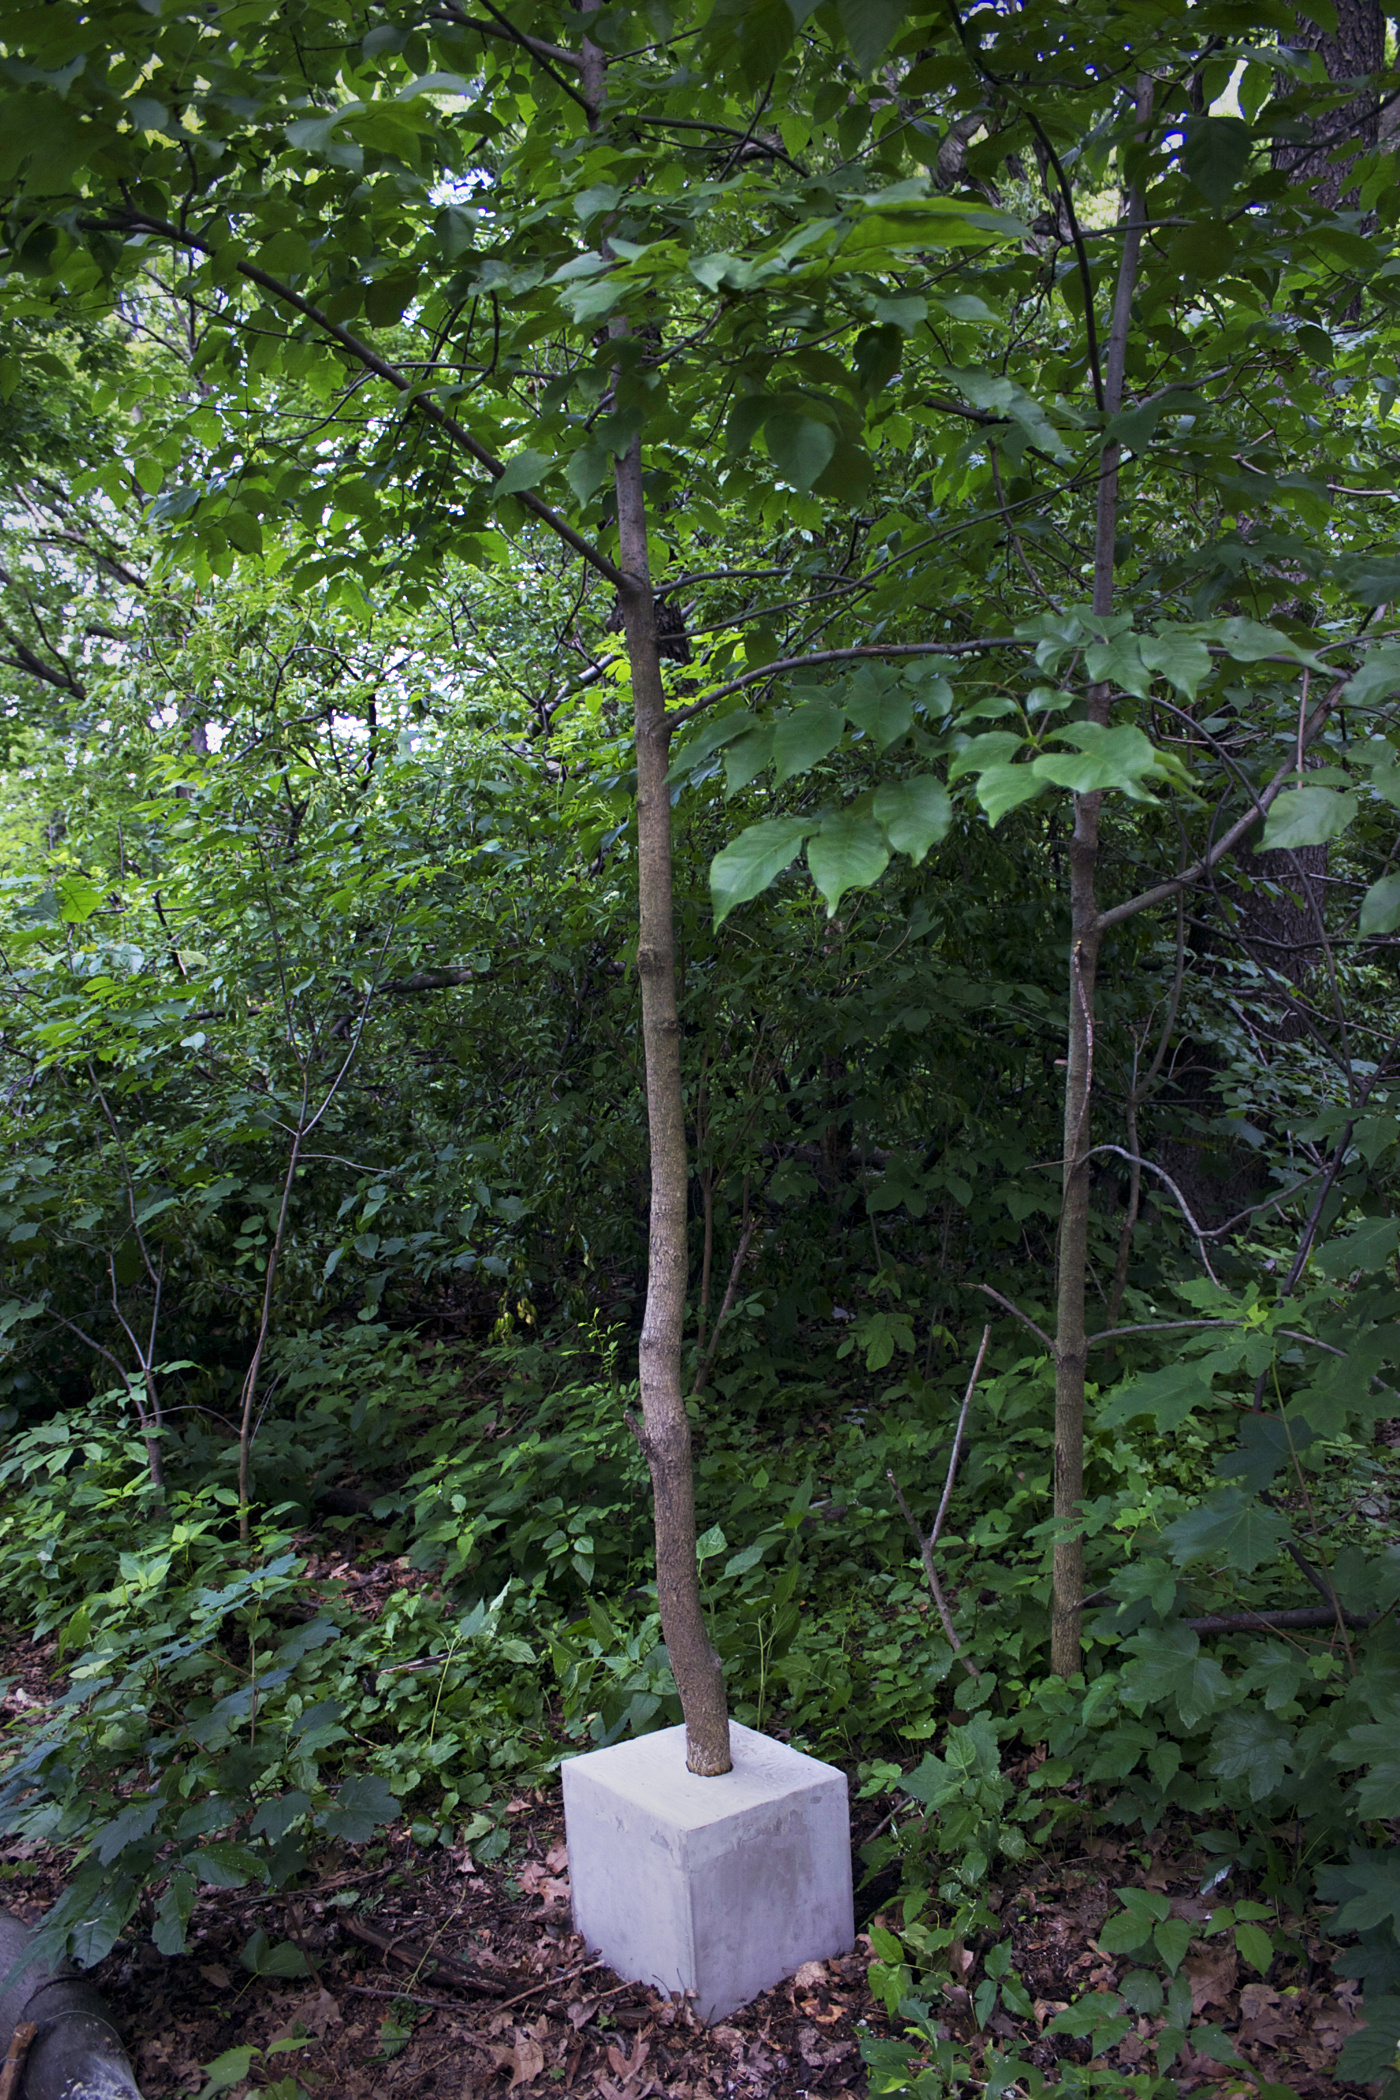 Cube tree I (Prospect Park) , 2013  Concrete, plywood, living tree  12 x 12 x 12 in (cube)  Installation view in Prospect Park, Brooklyn, NY